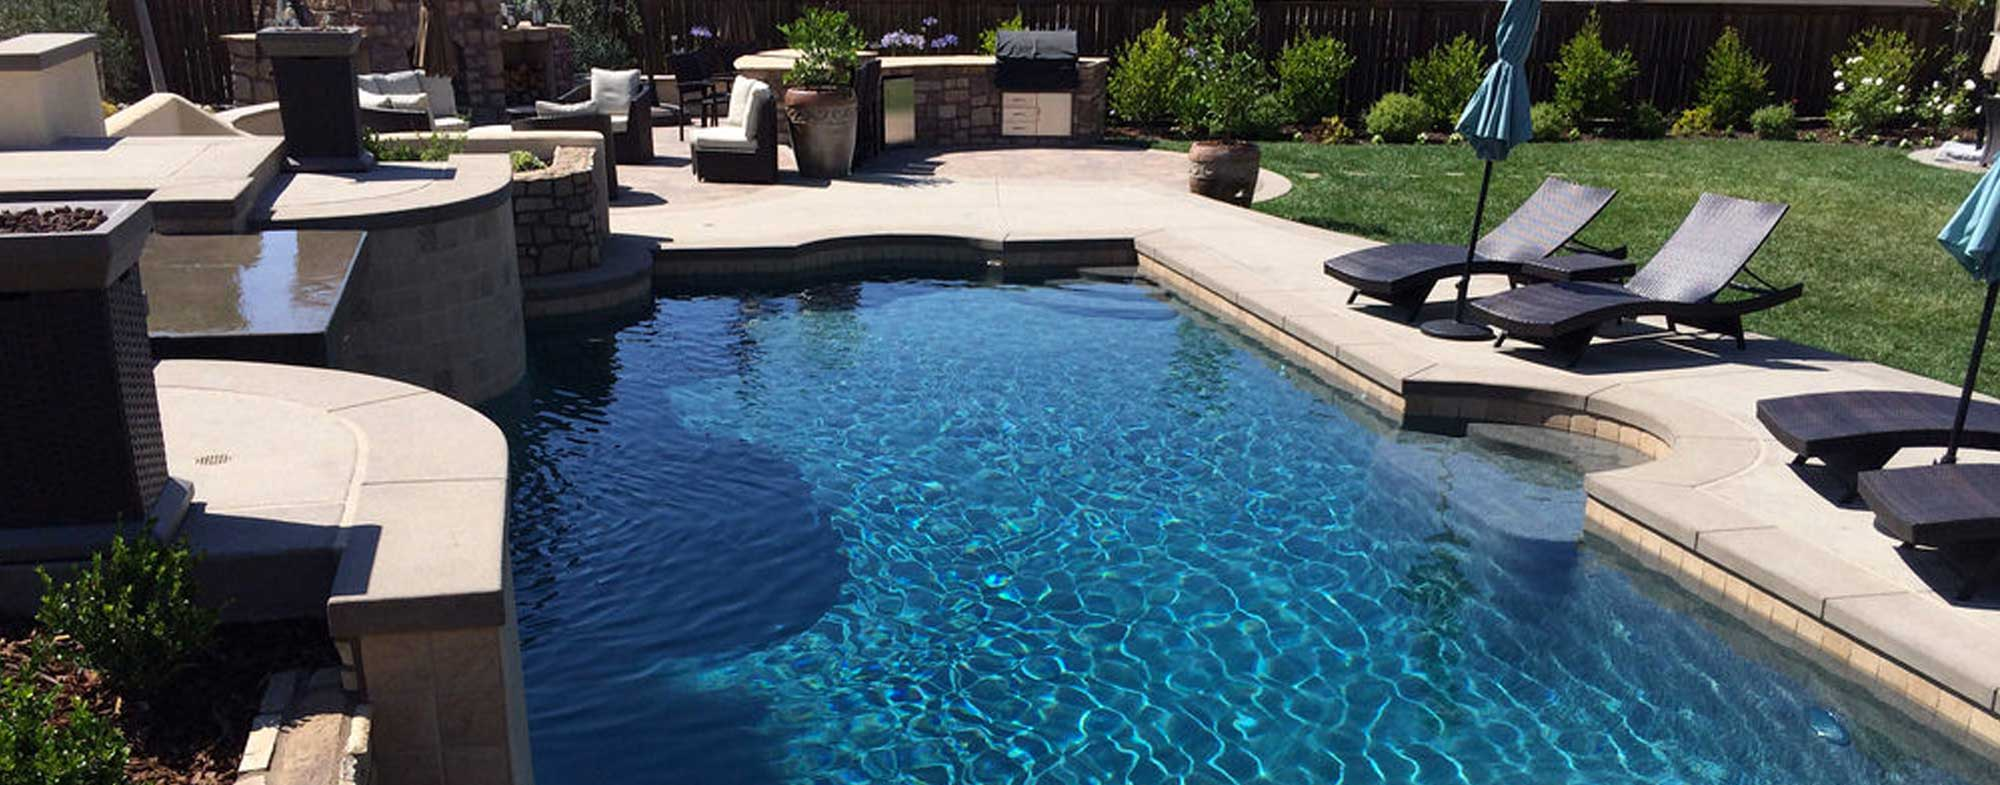 Commercial Pool Remodeling Service | Sol Pacific Pools ...